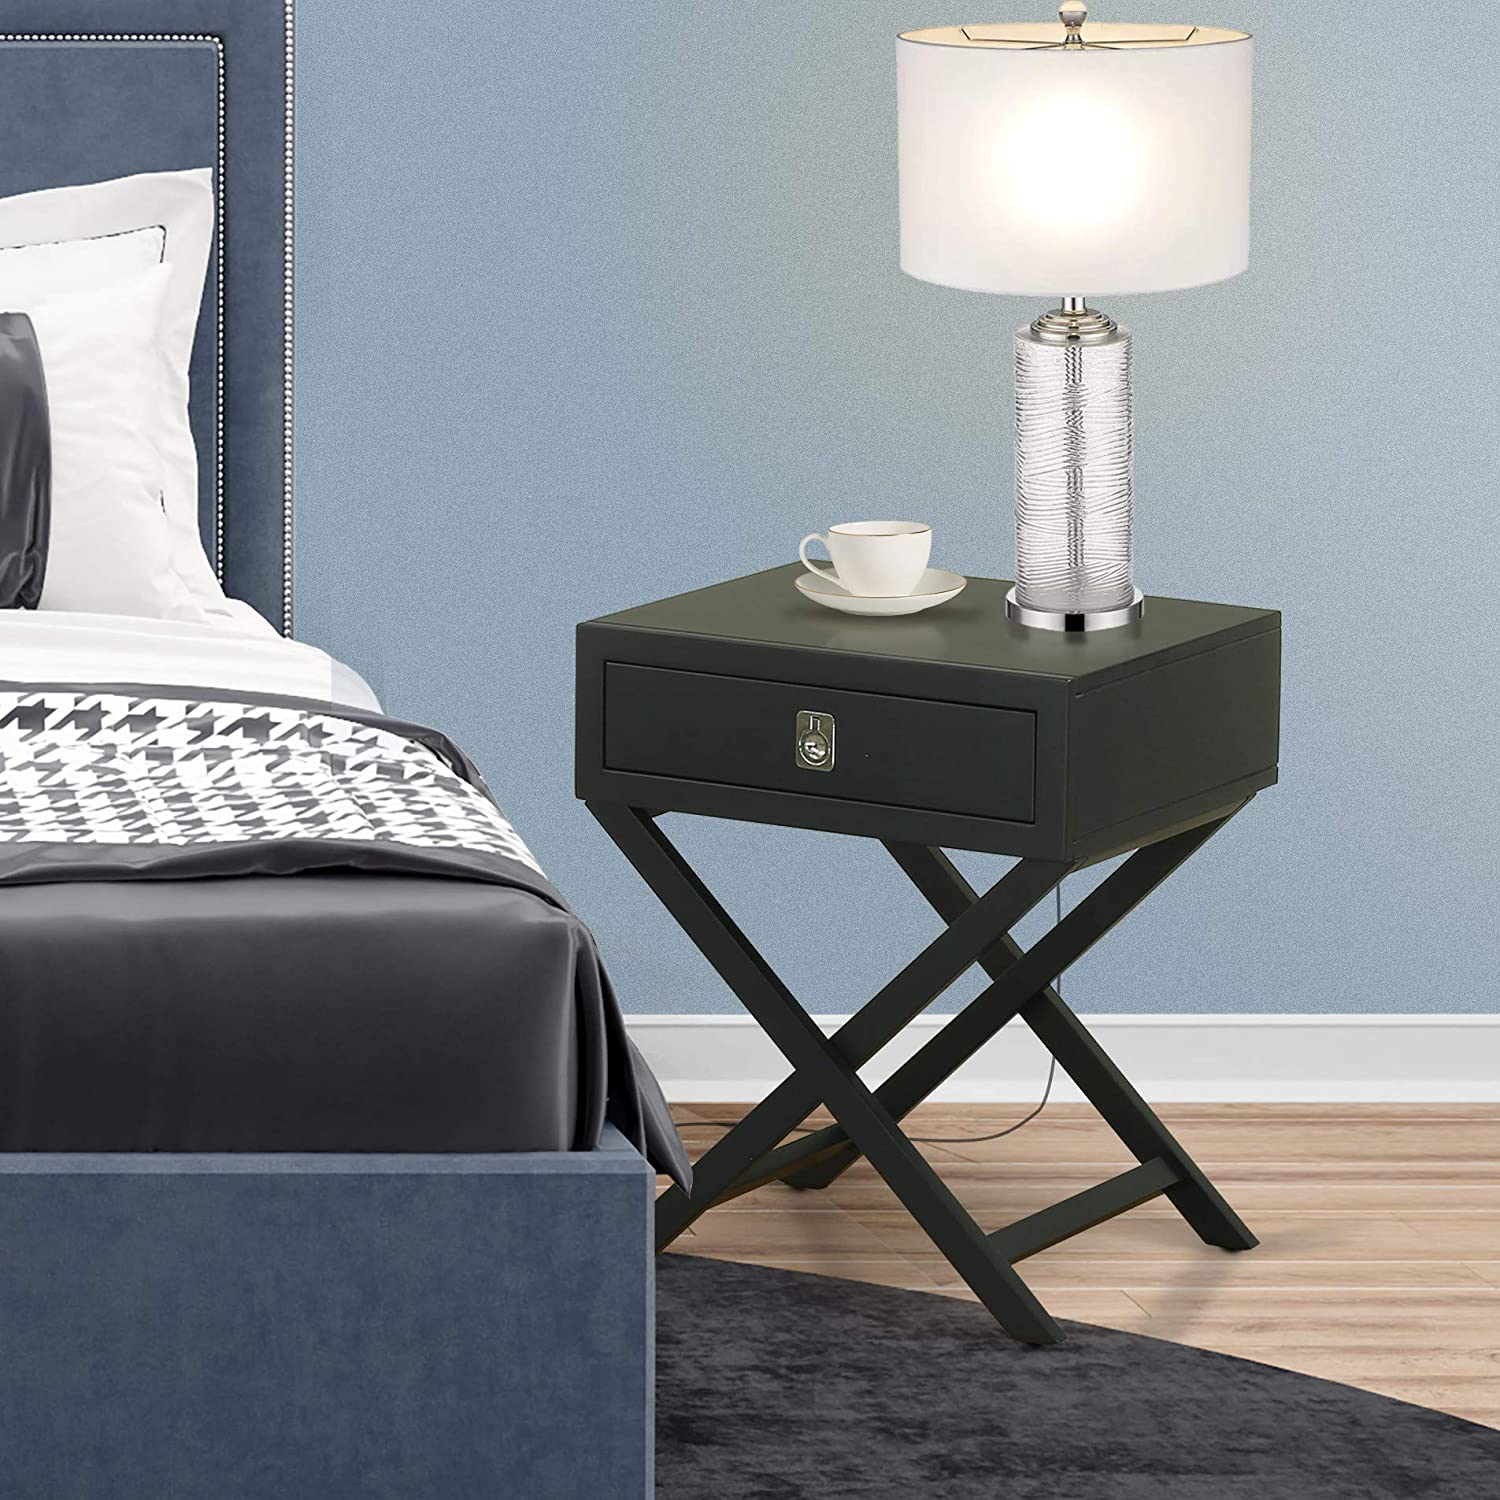 East West Furniture One Pc Gorgeous Hamilton Small Black Rectangular Table with Drawer, 1-Pack, Finish